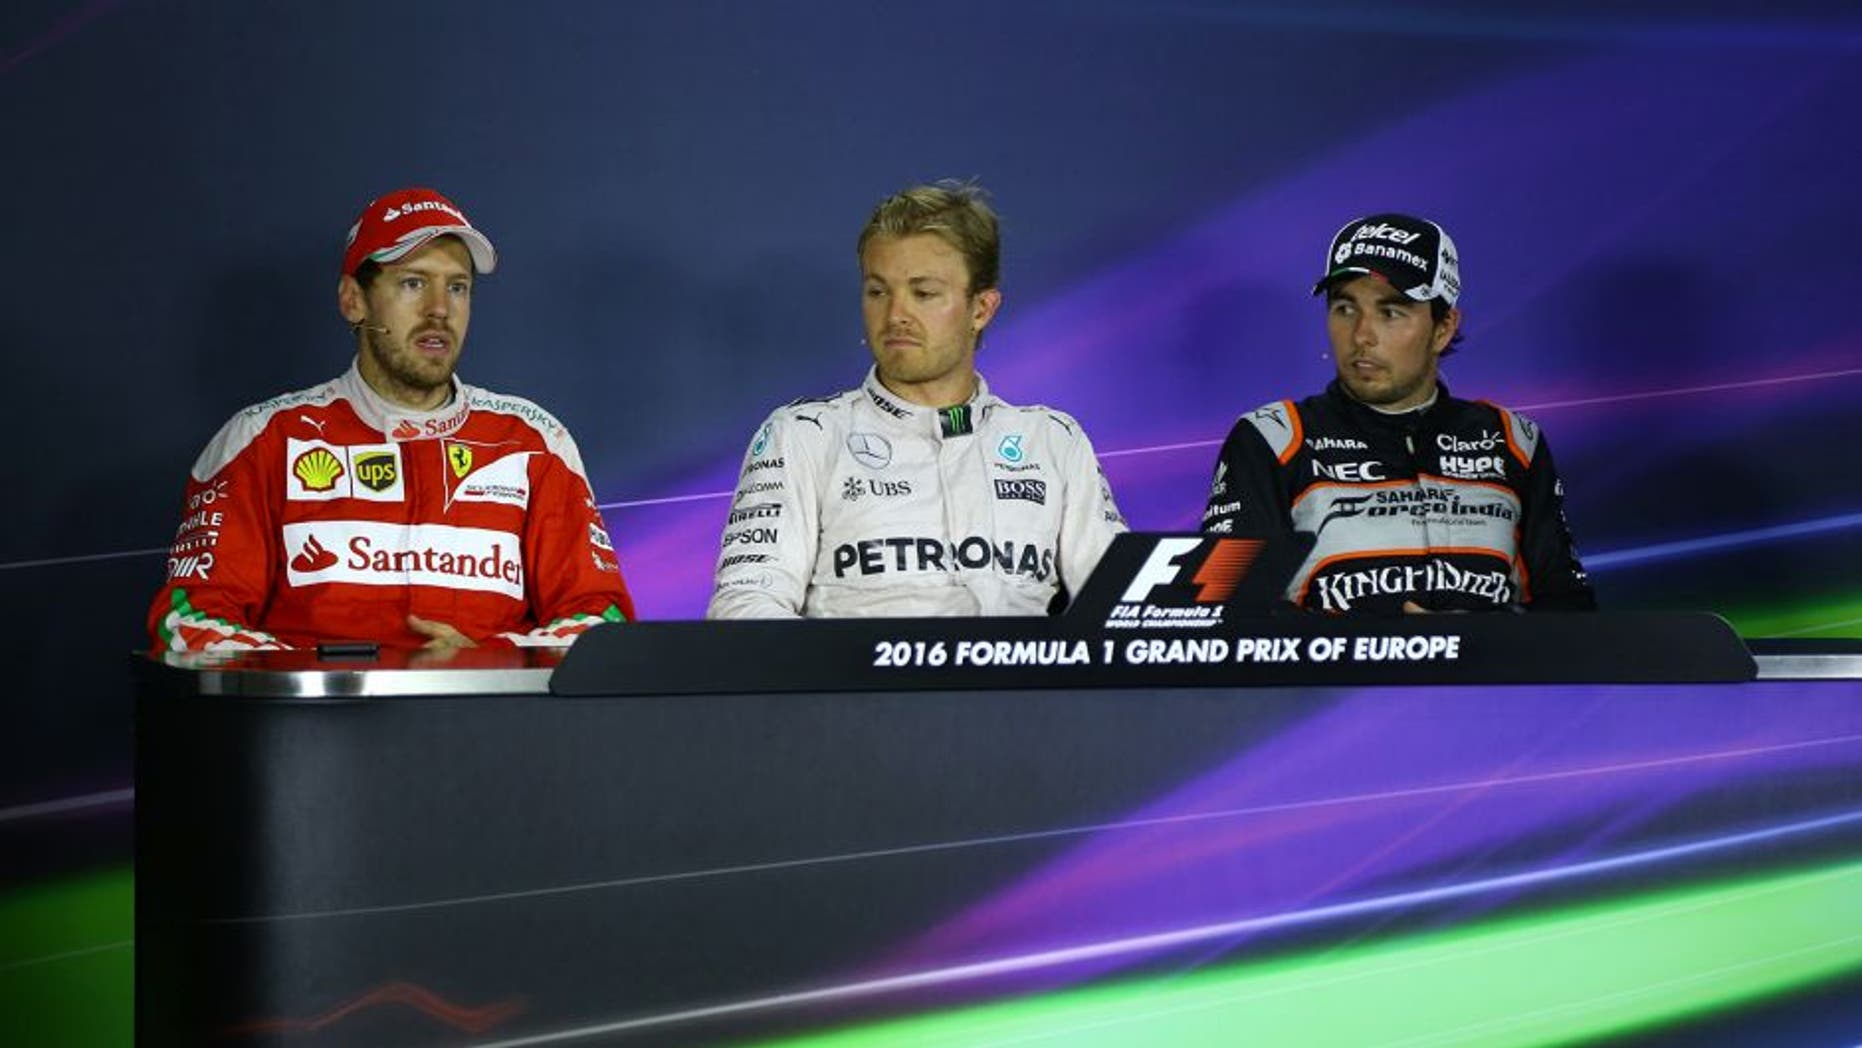 BAKU, AZERBAIJAN - JUNE 19: Nico Rosberg (C) of Mercedes AMG Pertronas F1 (C), Ferrari's Sebastian Vettel (L) and Sergio Perez (R) of Sahara Force India F1 attend a press conference during the 2016 Formula One Grand Prix of Europe in Baku, Azerbaijan on June 19, 2016. (Photo by Resul Rehimov/Anadolu Agency/Getty Images)